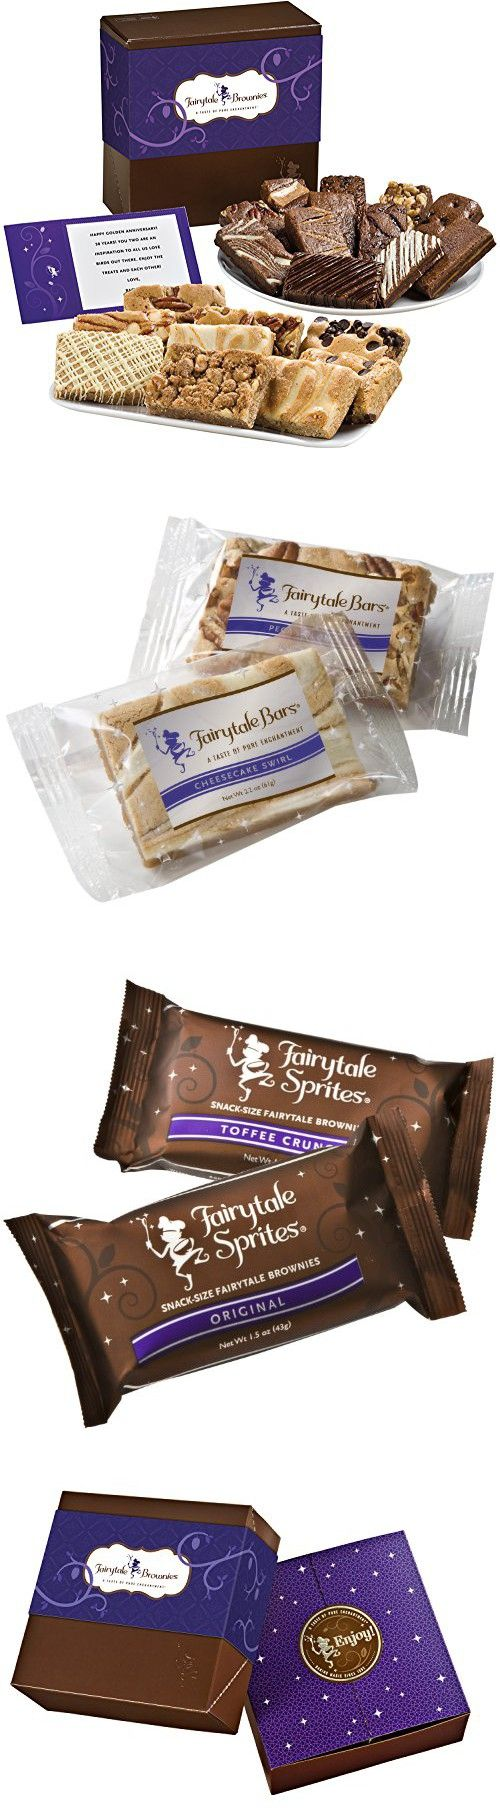 Fairytale Brownies Bar & Sprite Combo Gourmet Food Gift Basket Chocolate Box - 3 Inch x 1.5 Inch Snack-Size Brownies and 3 Inch x 2 Inch Blondie Bars - 21 Pieces